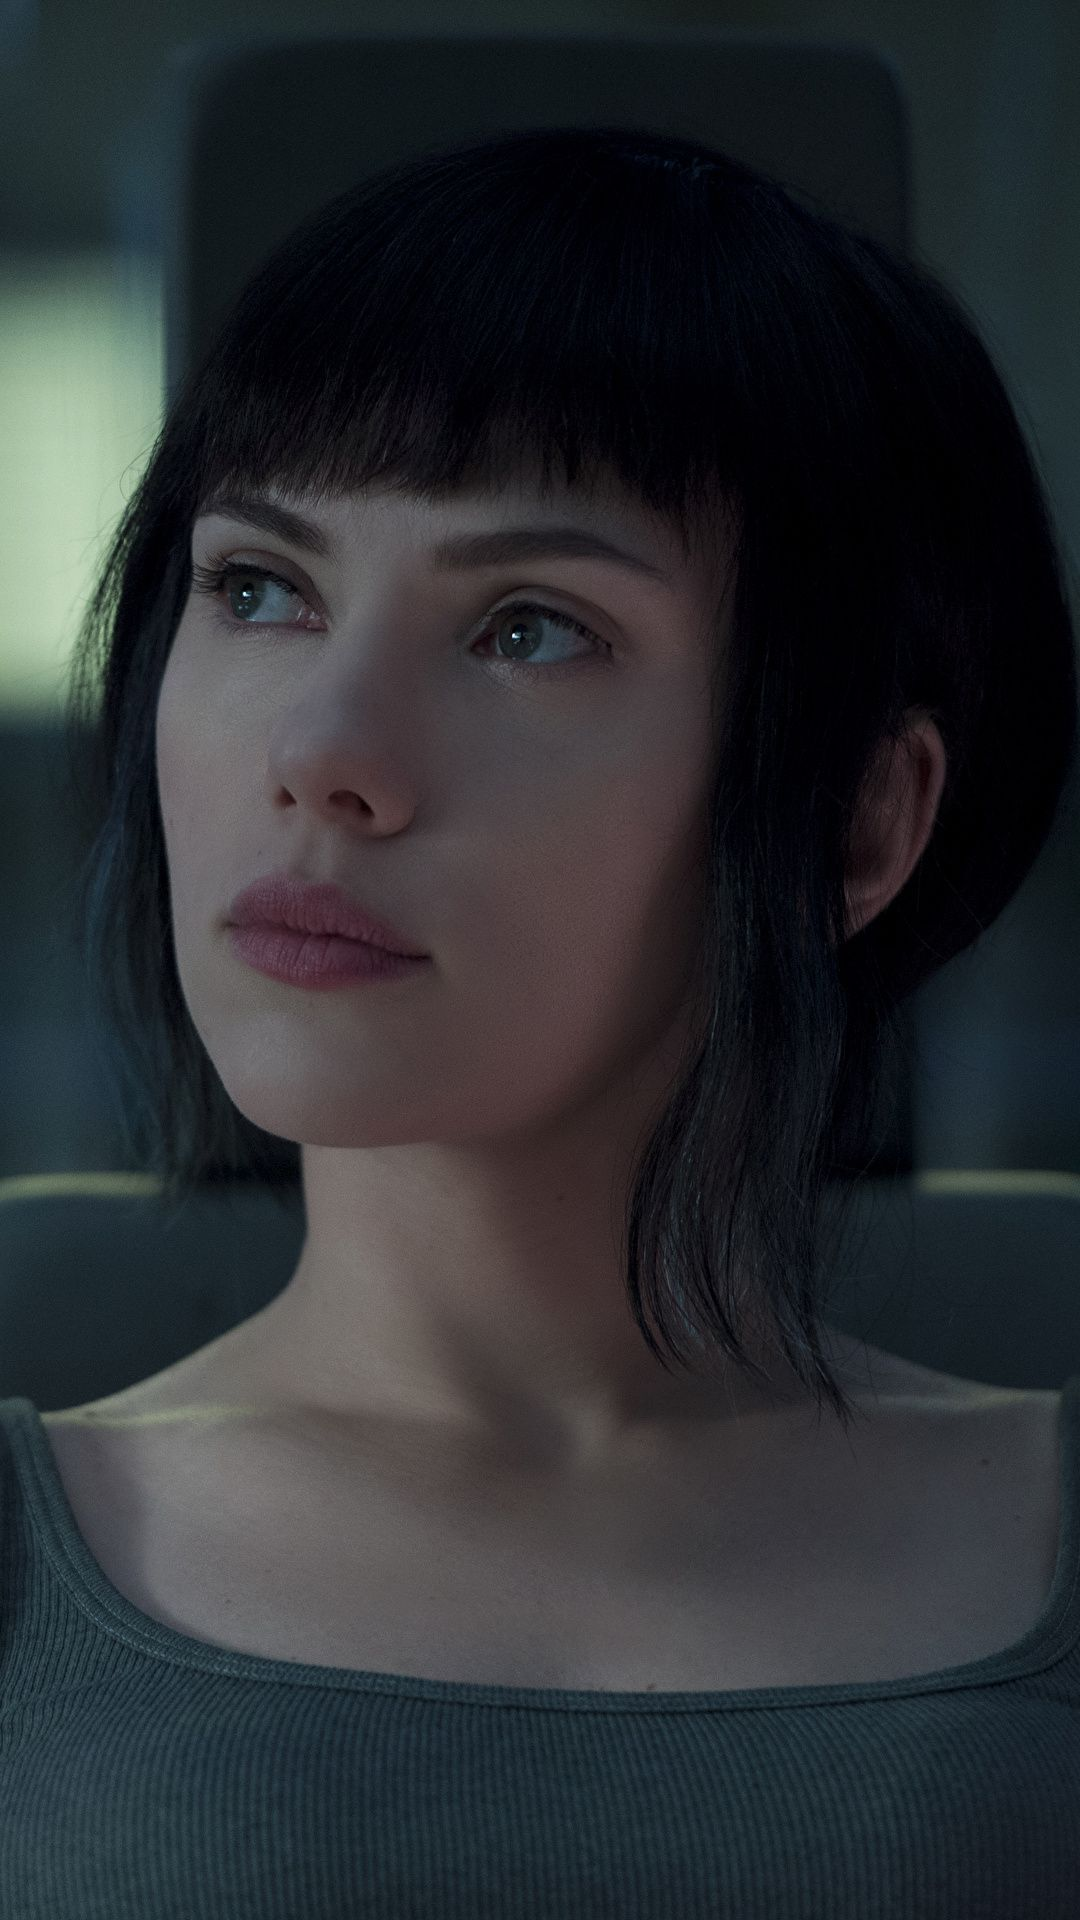 1080x1920 Wallpaper Ghost in the Shell 2017 Scarlett Johansson young ...